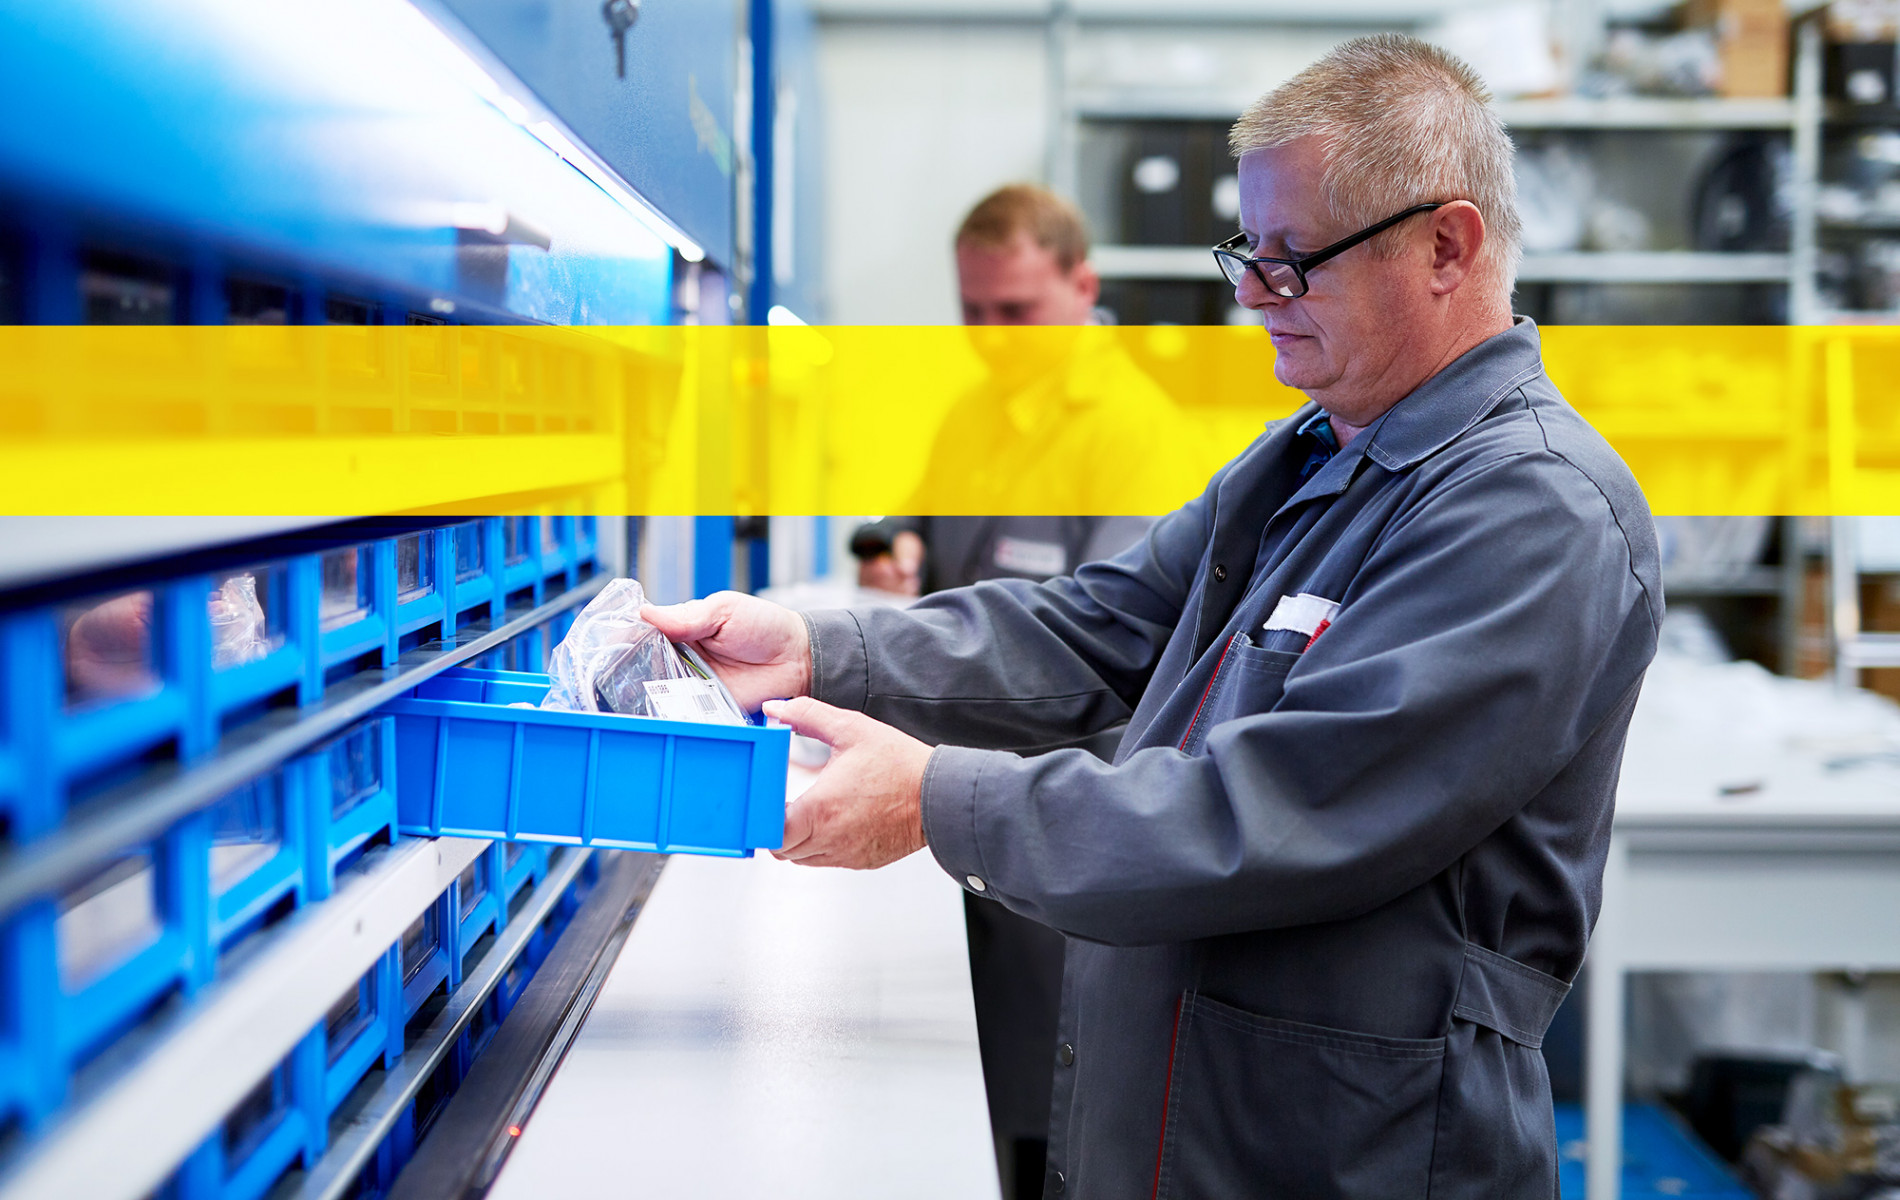 Service employee looks for spare parts